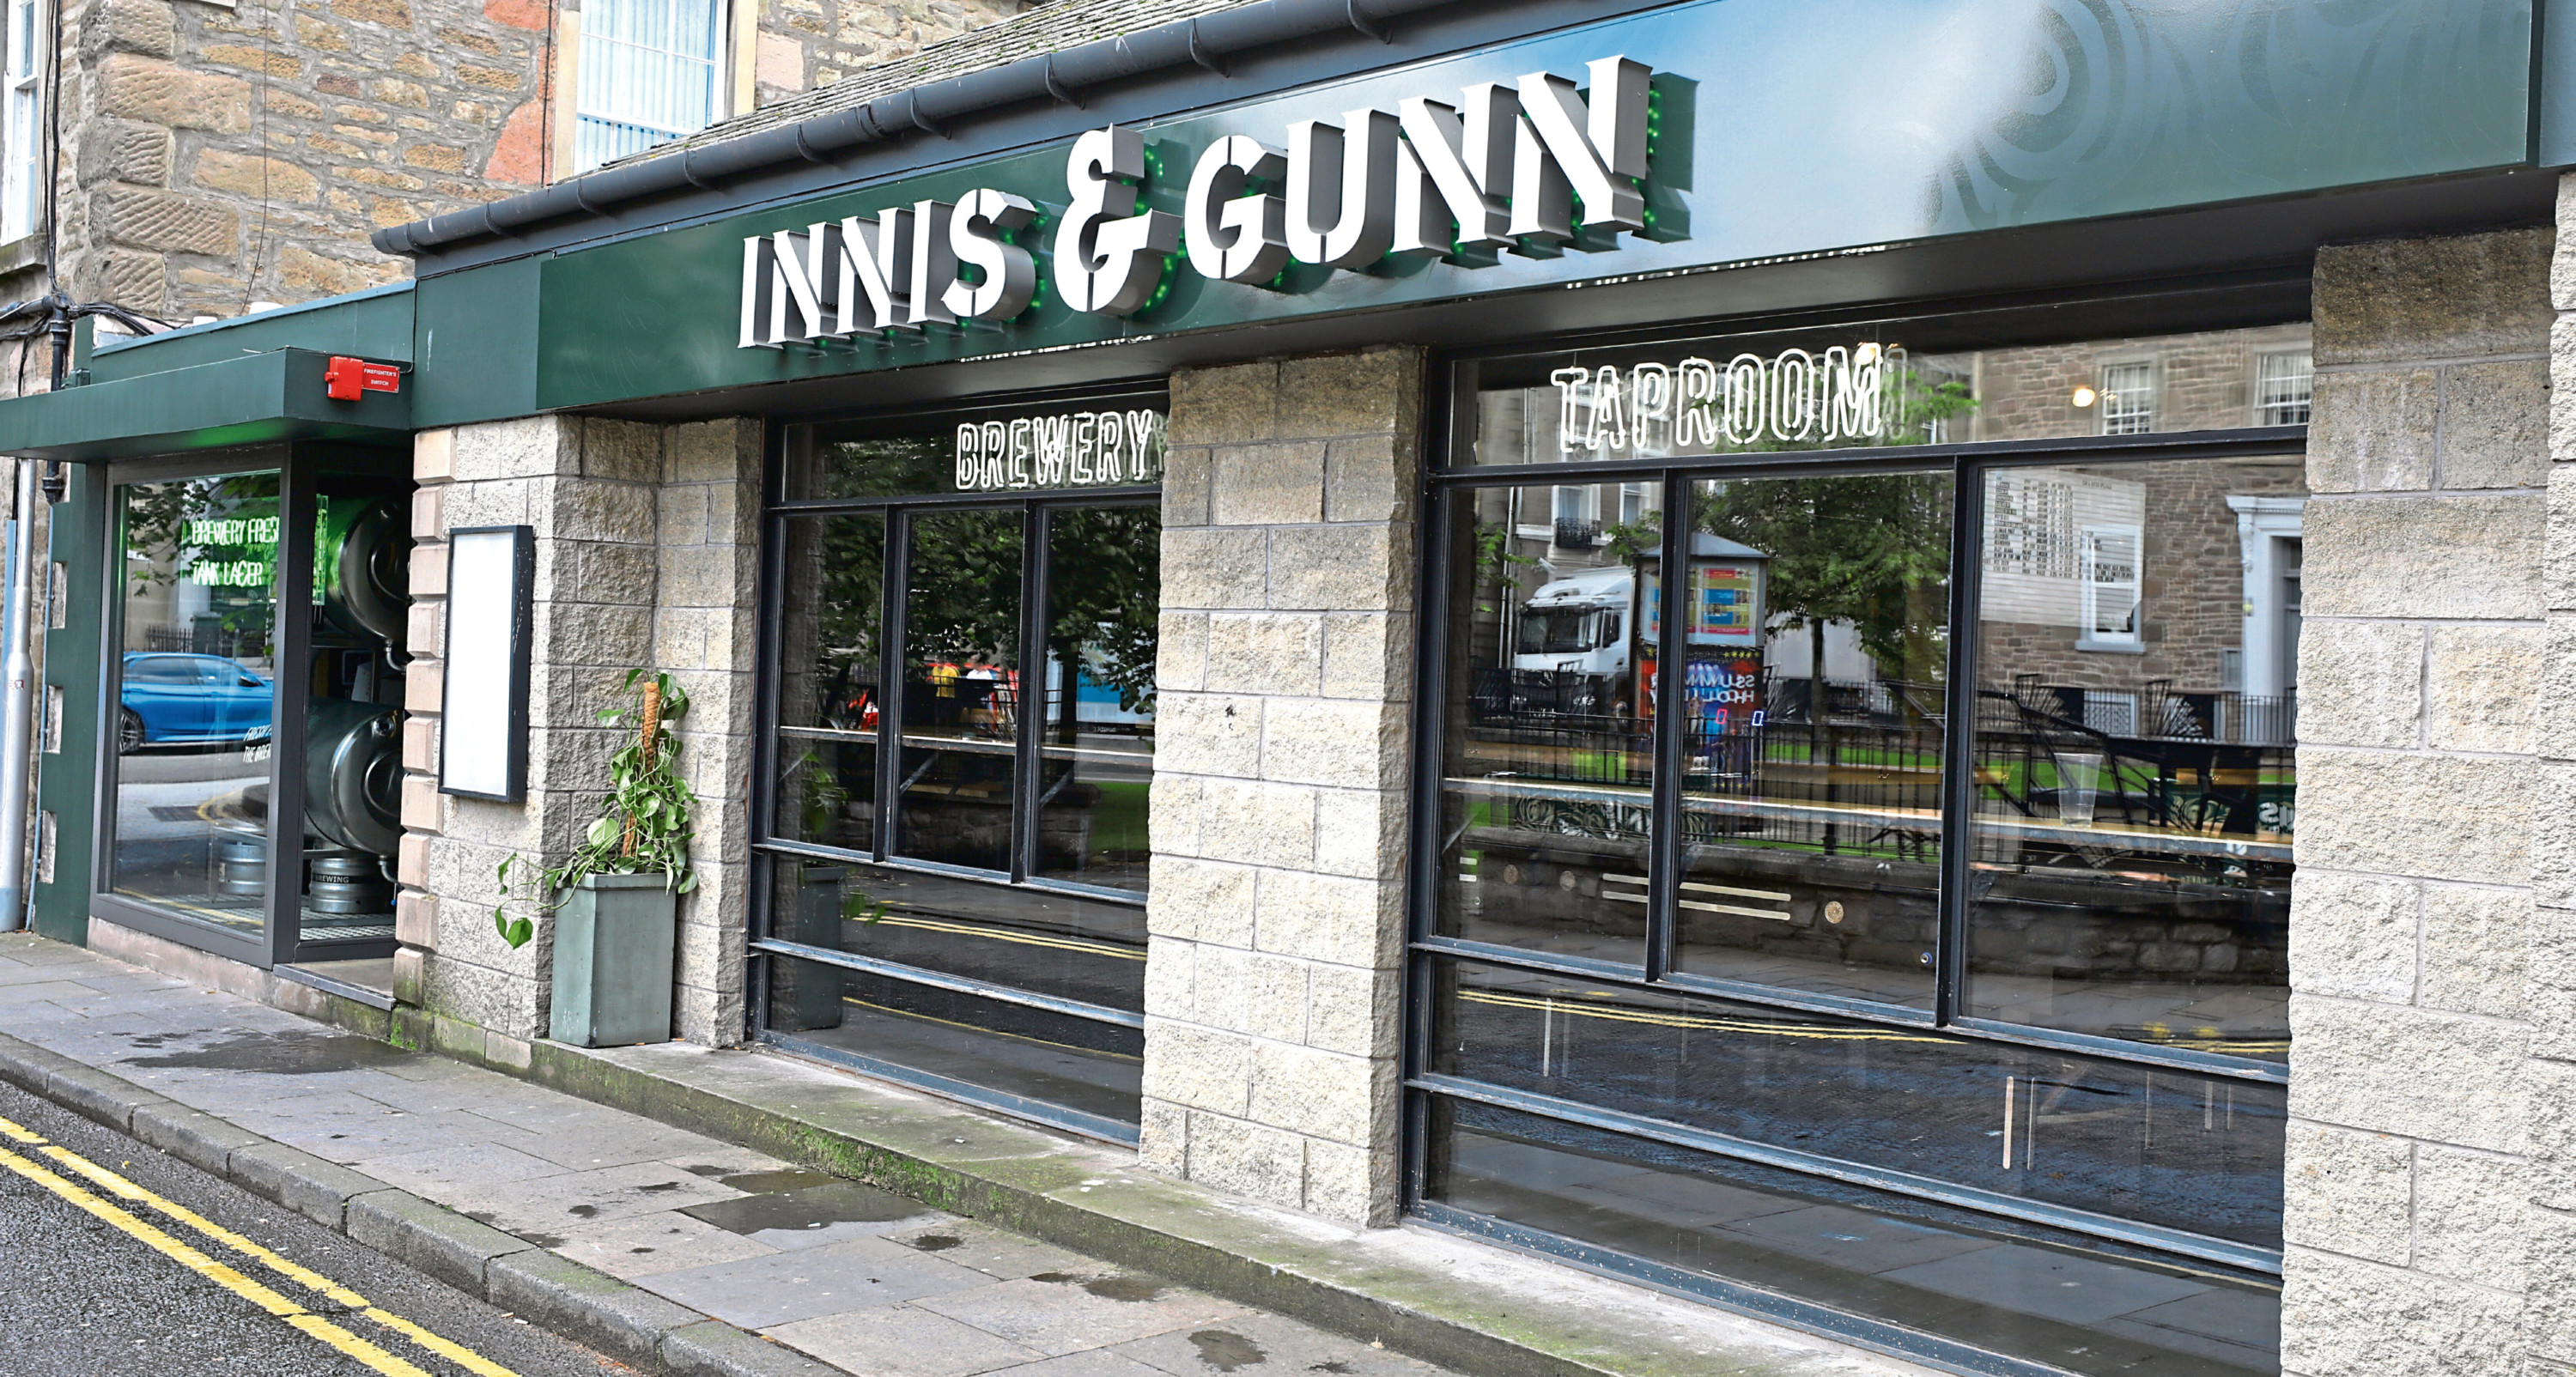 Tele Features - Rona Scanlan story - Innis & Gunn. CR0012434 Picture shows; the Innis & Gunn Brewery Taproom in South Tay Street, Dundee today. Monday 5th August 2019.